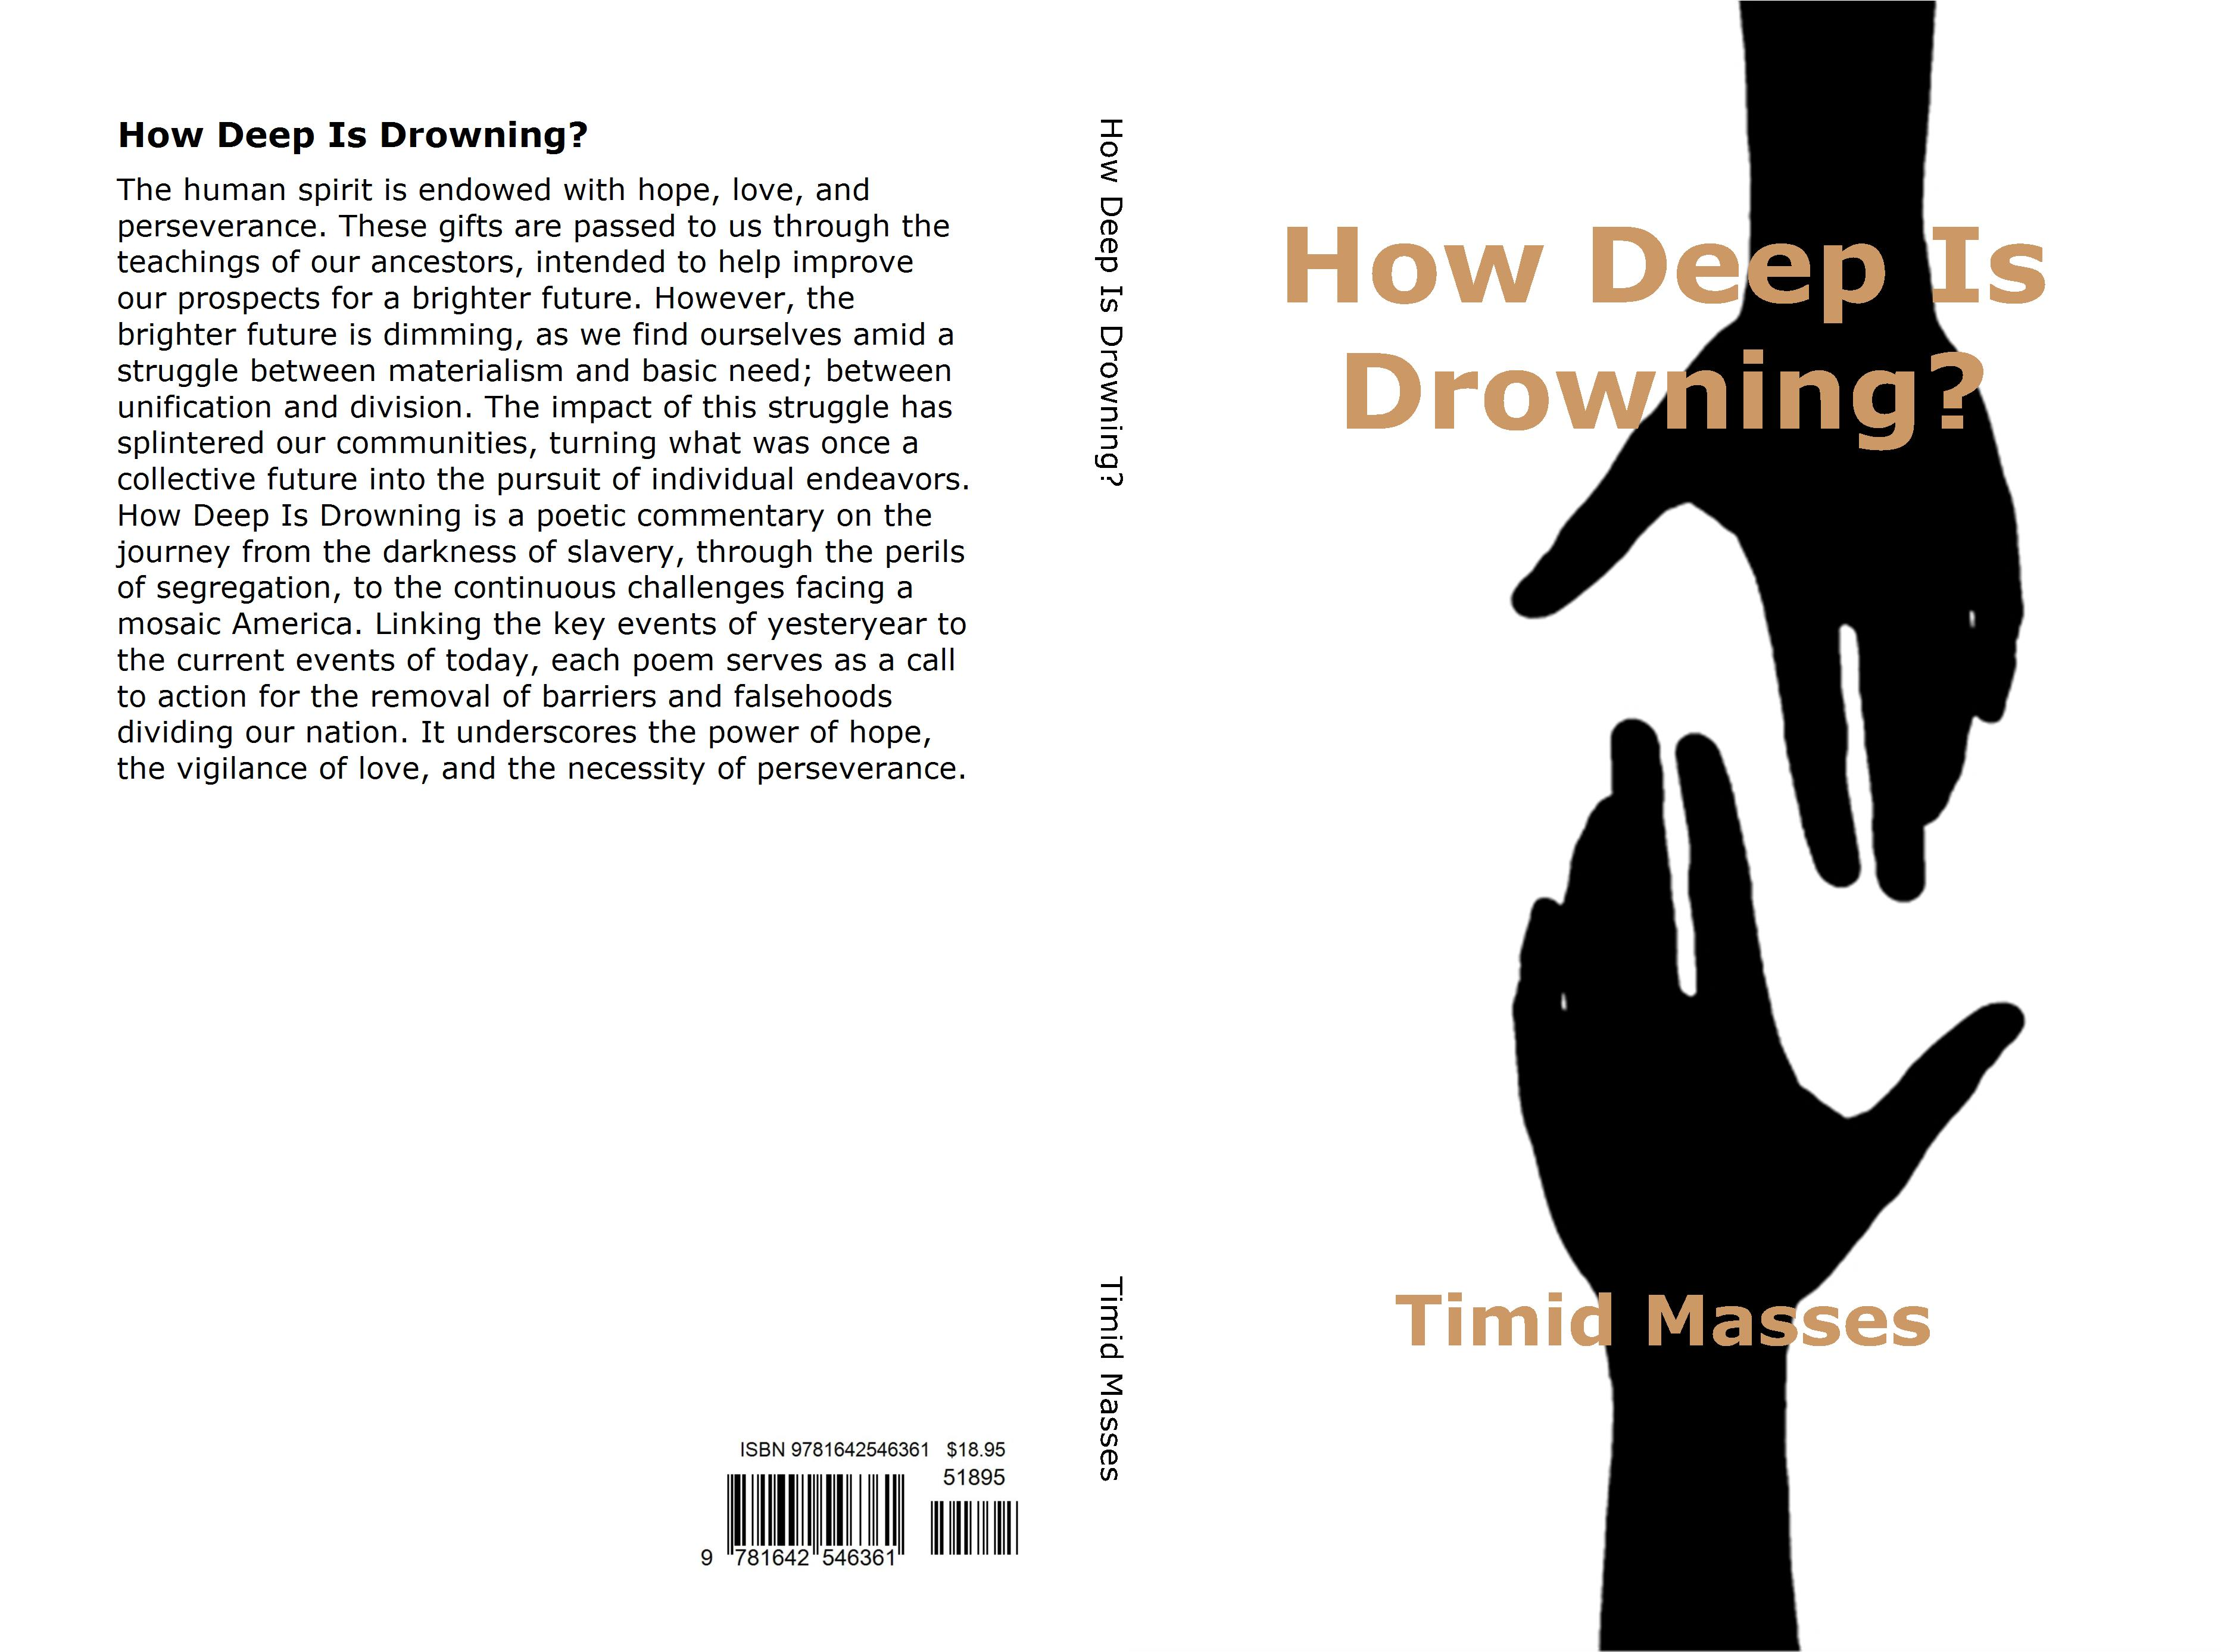 How Deep Is Drowning? cover image